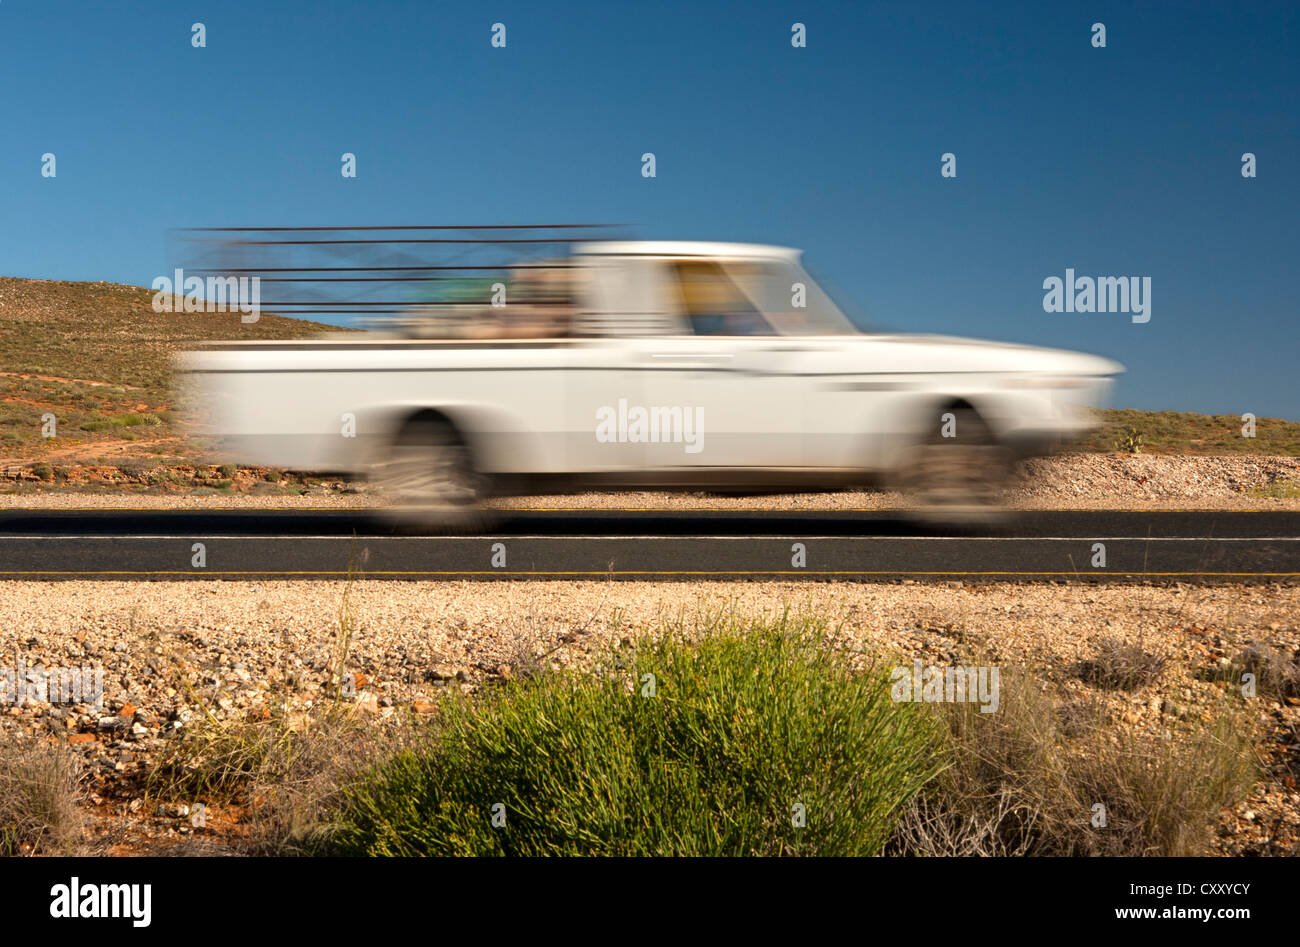 Small van travelling, motion blur, National Road N7, Northern Cape province, South Africa, Africa - Stock Image